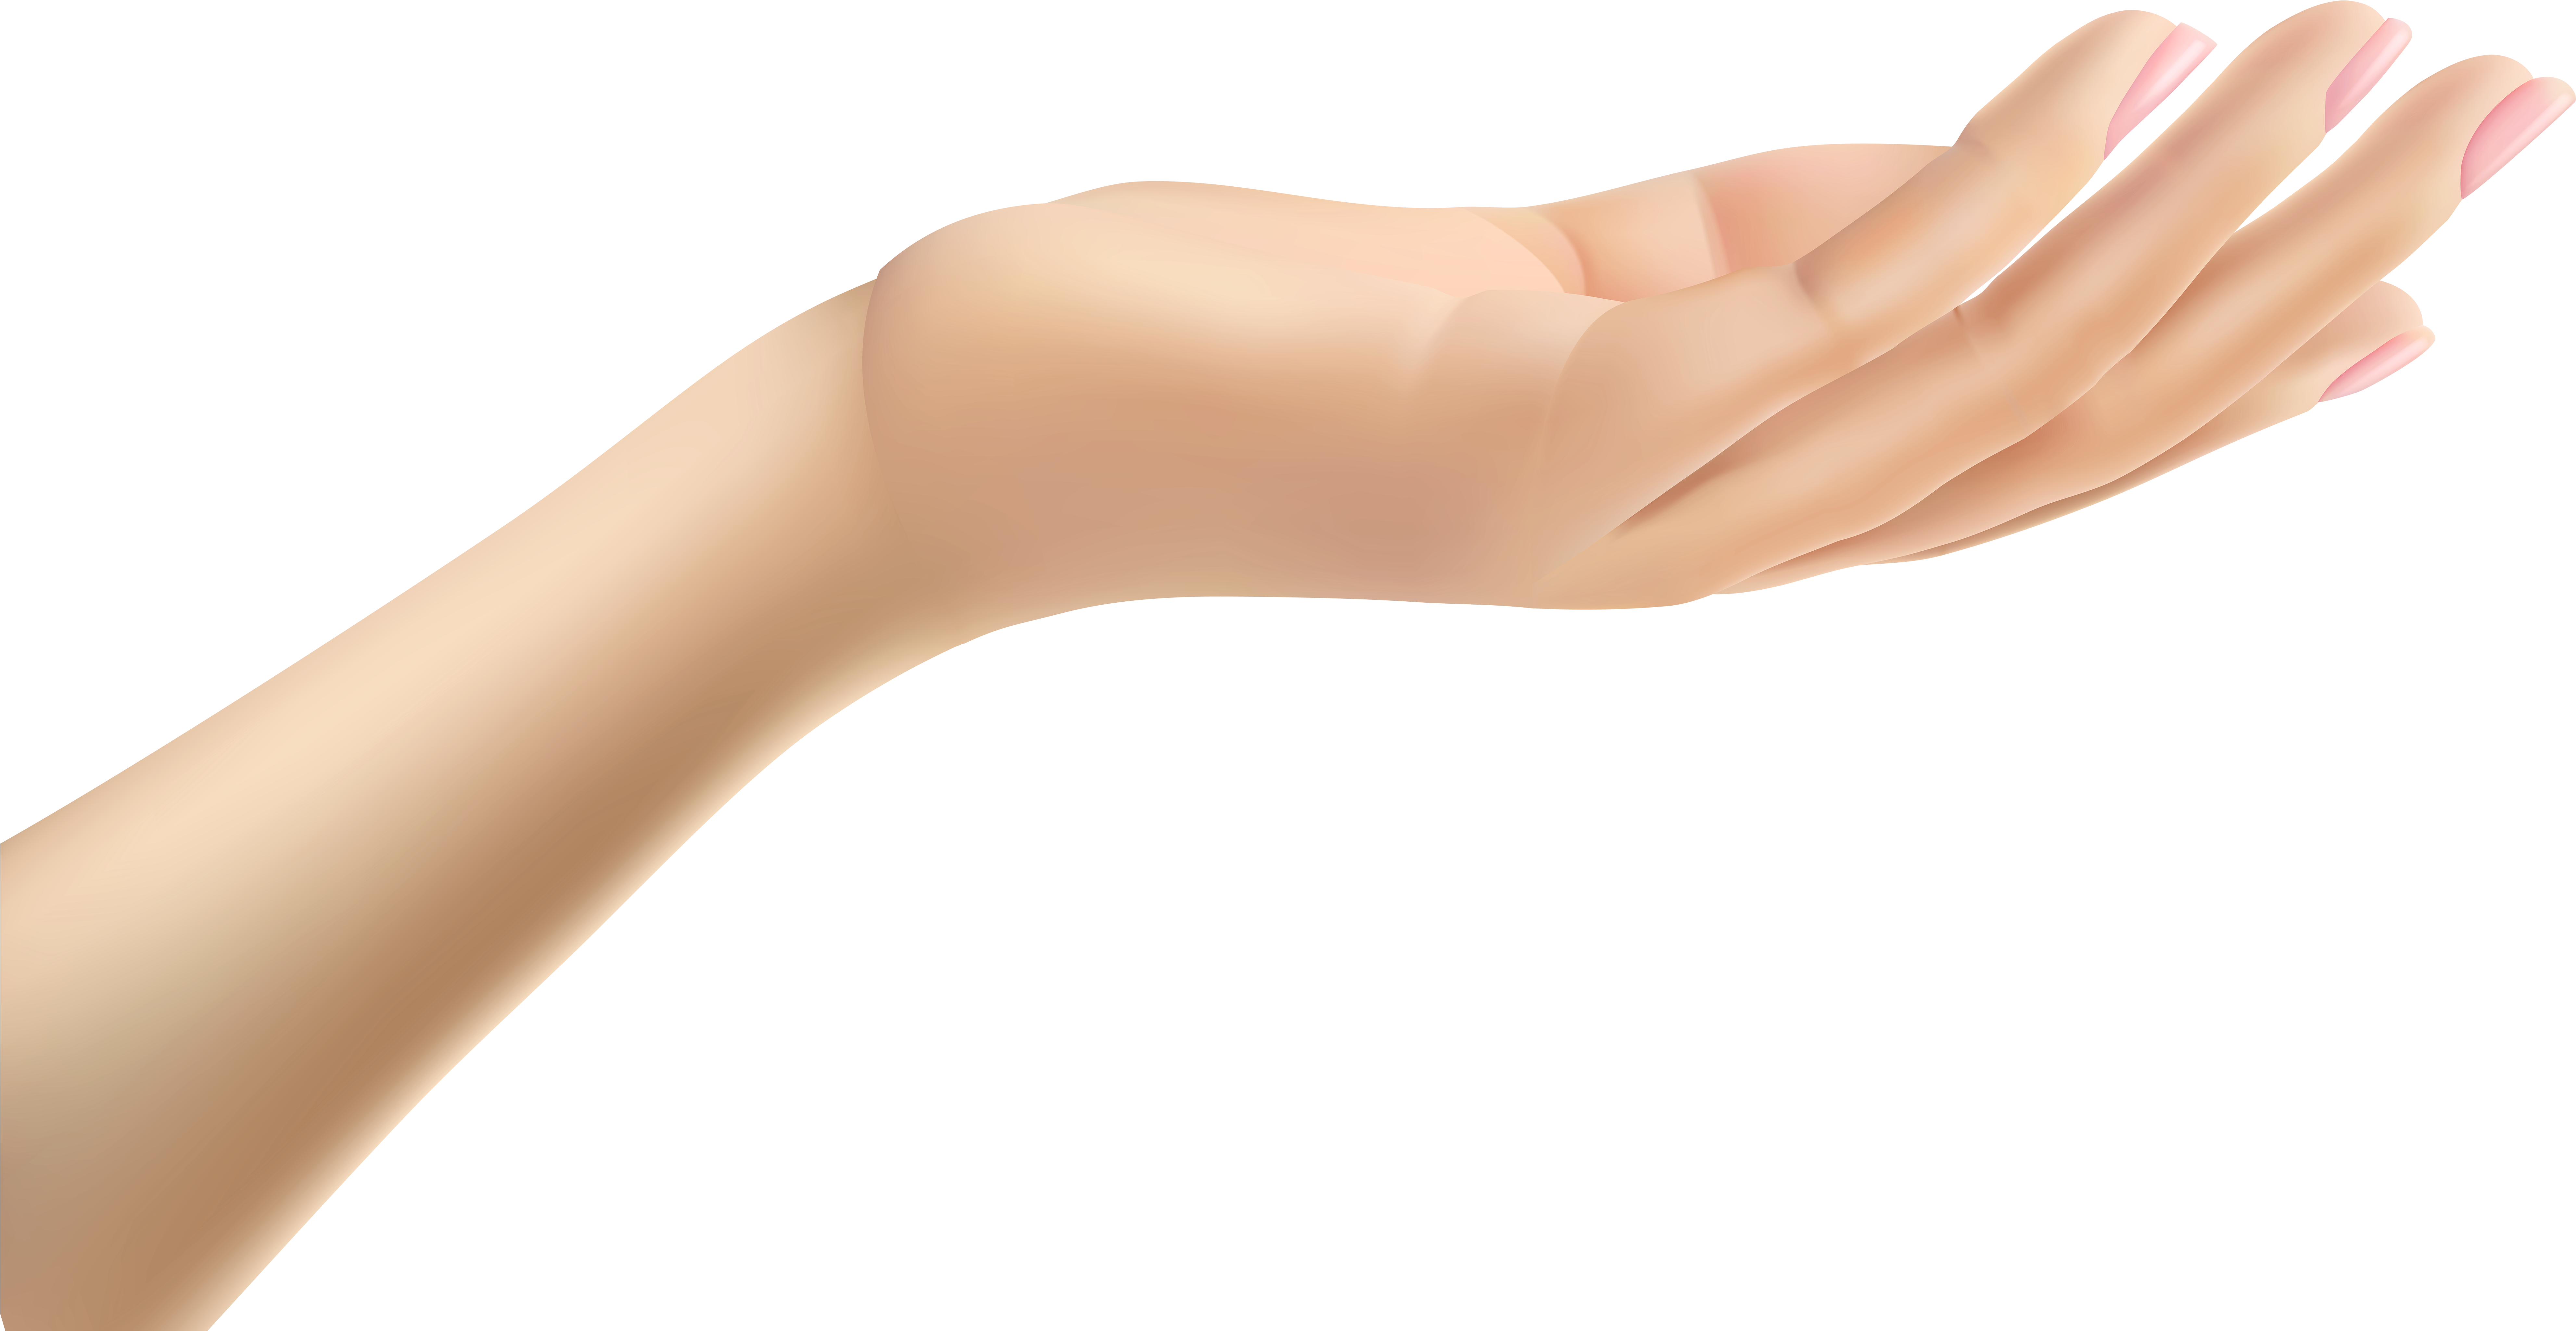 Download Transparent Hand Png Png Image With No Background Pngkey Com Download free hands png images. pngkey